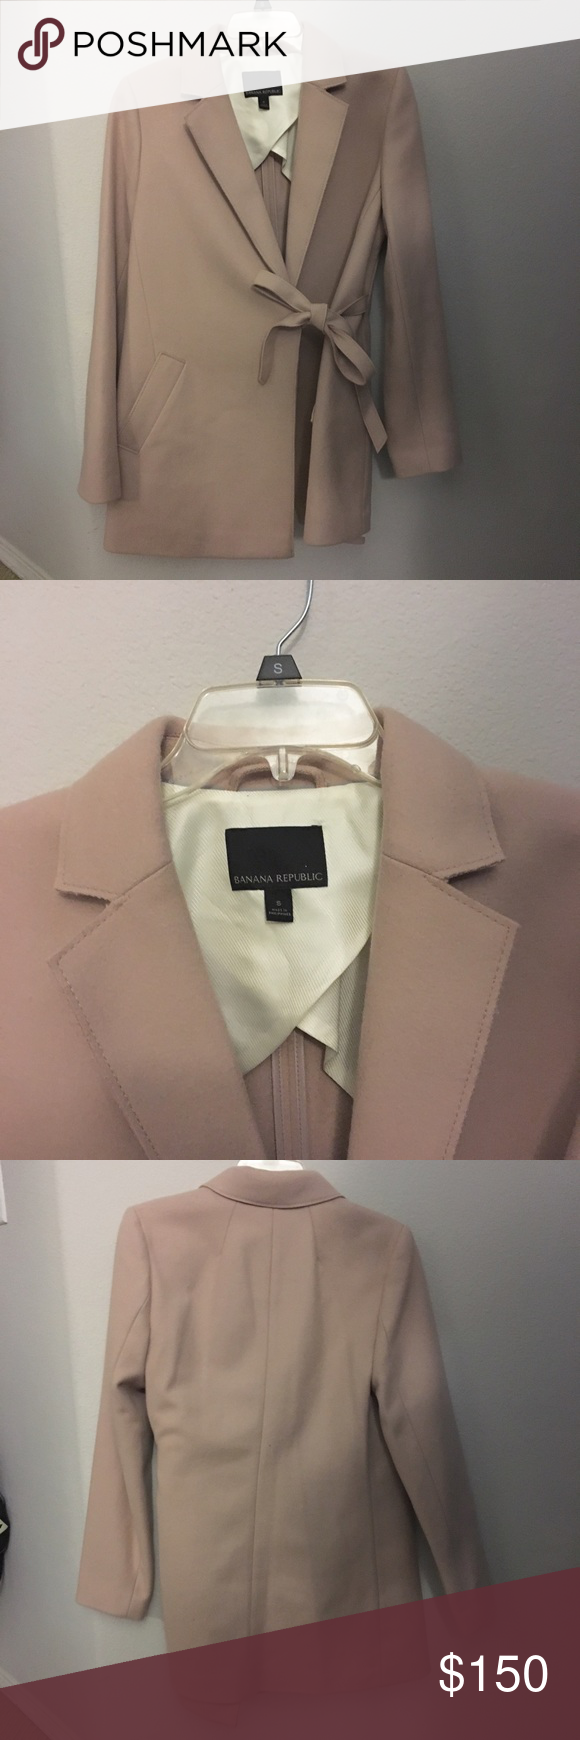 Light pink wrap wool coat NOTE: Moving in 1.5 months. Make your offers! Brand: Banana Republic. Size small. Super chic and cute! Such a beautiful colors. Only worn twice. NO SWAPS. #bananarepublic #light #pink #wrap #wool #coat   Fun fact: I discoumt bundles! :) Banana Republic Jackets & Coats Pea Coats